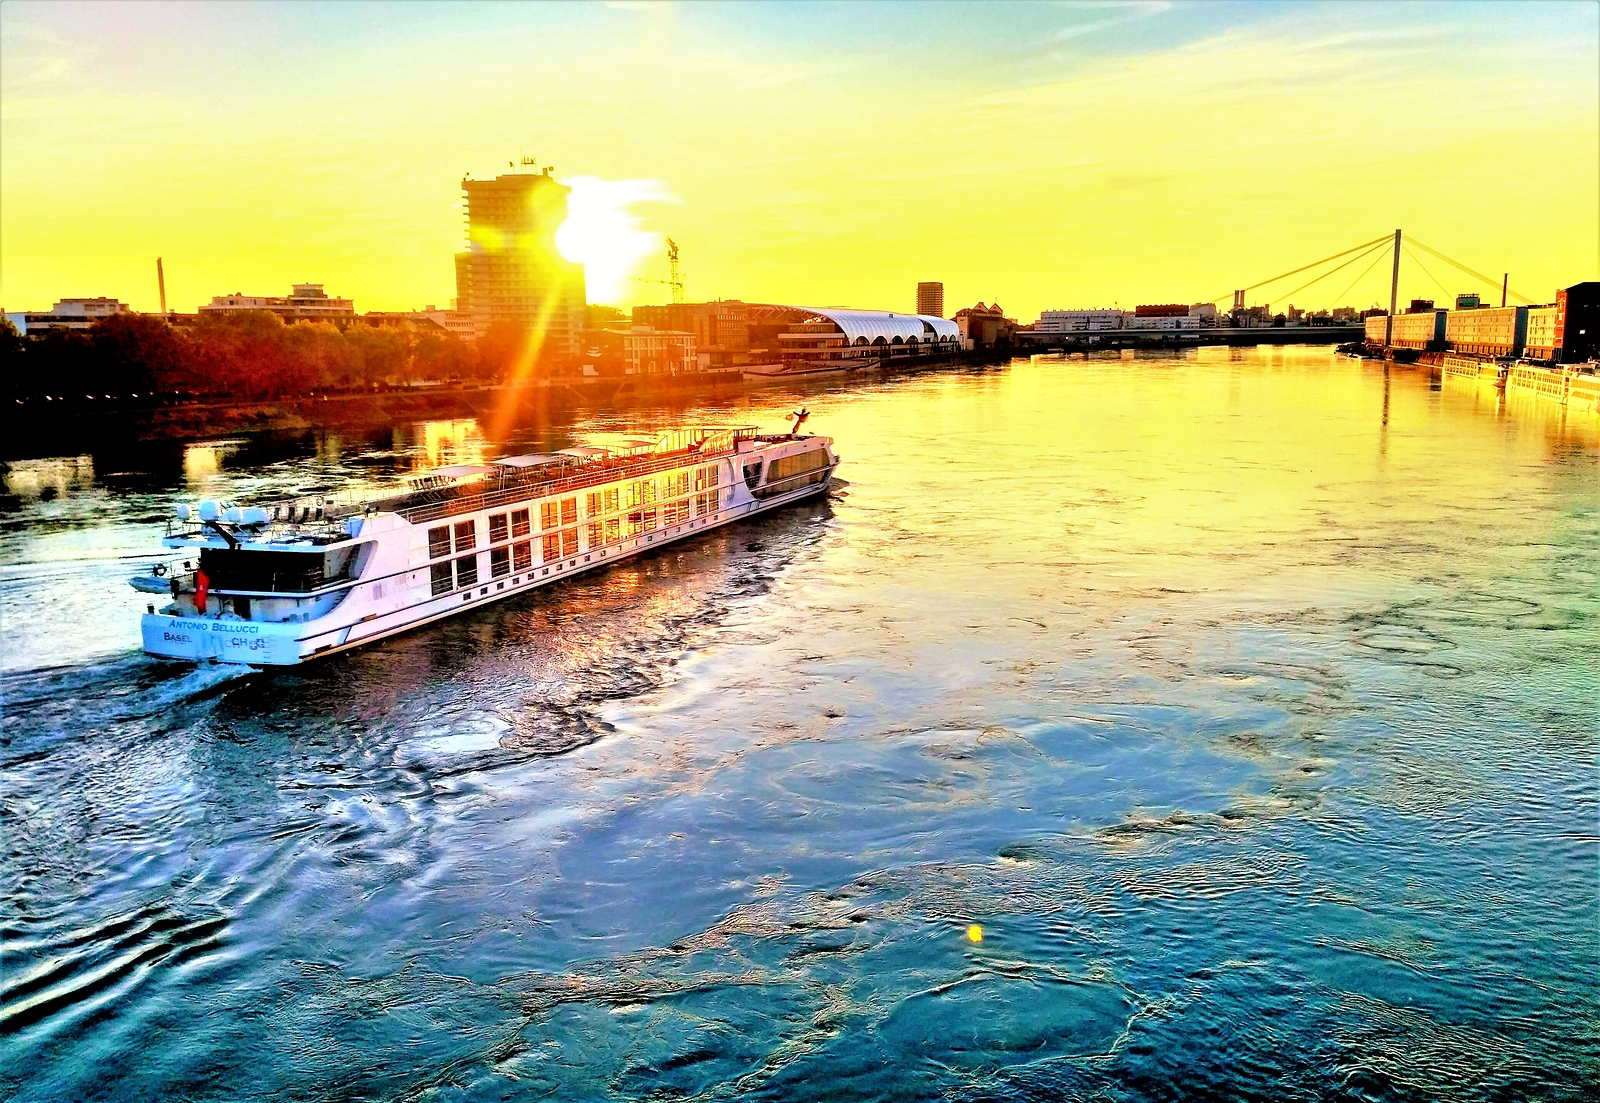 River Cruising Trips Travel Leaders Destinations Unlimited